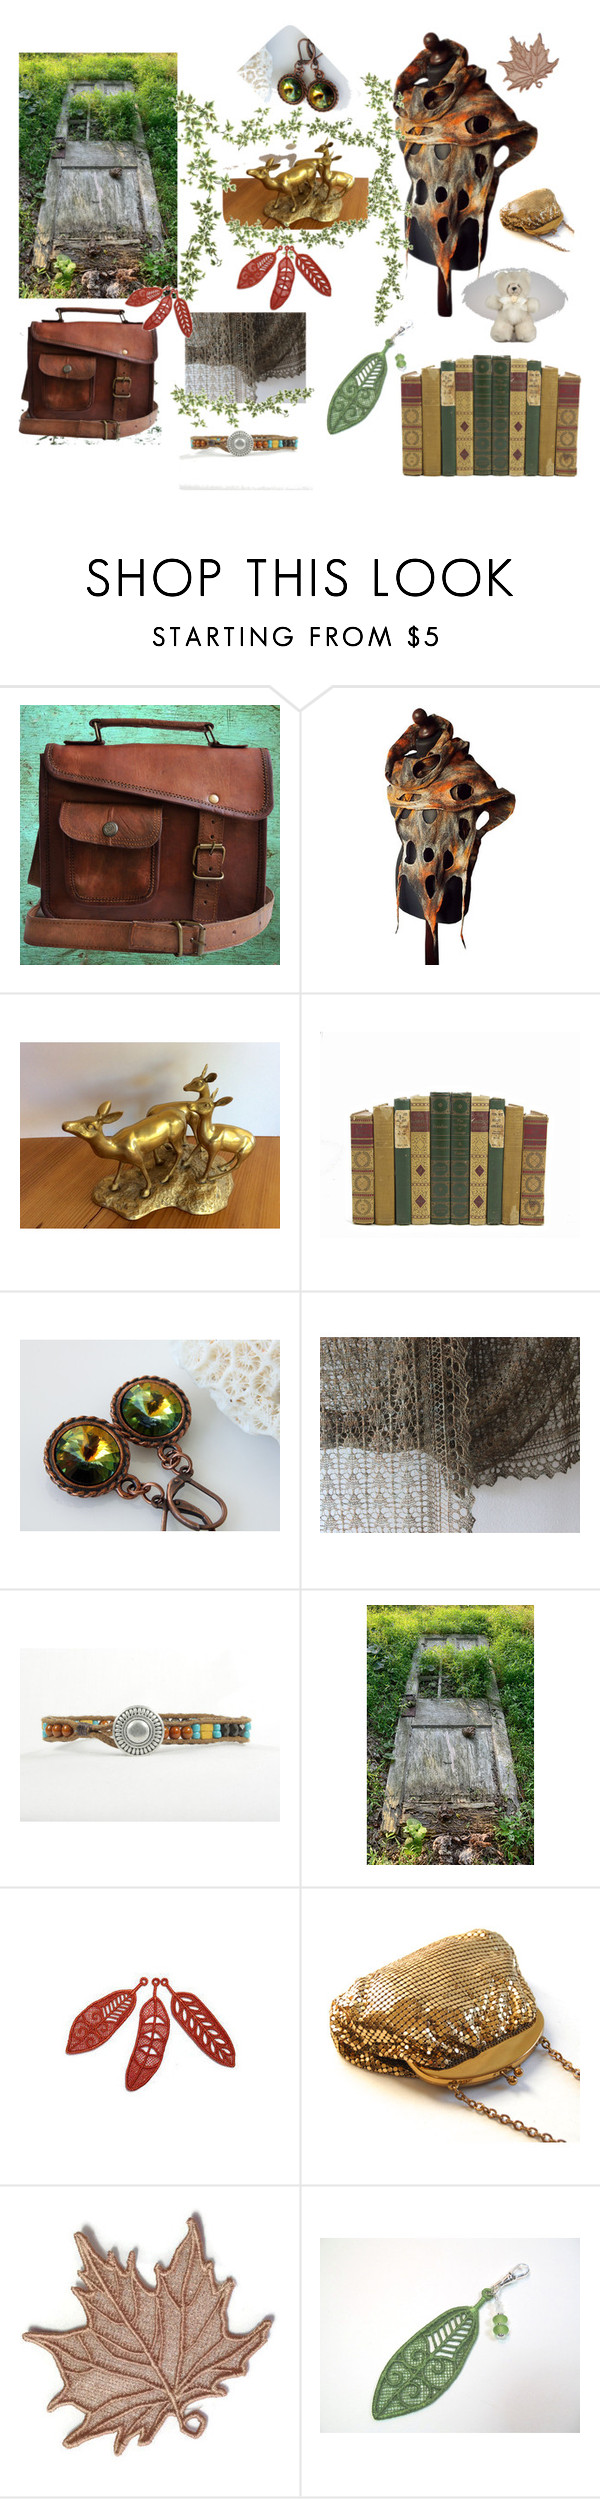 """""""Decor & Accessories (5)"""" by keepsakedesignbycmm ❤ liked on Polyvore featuring Whiting & Davis"""